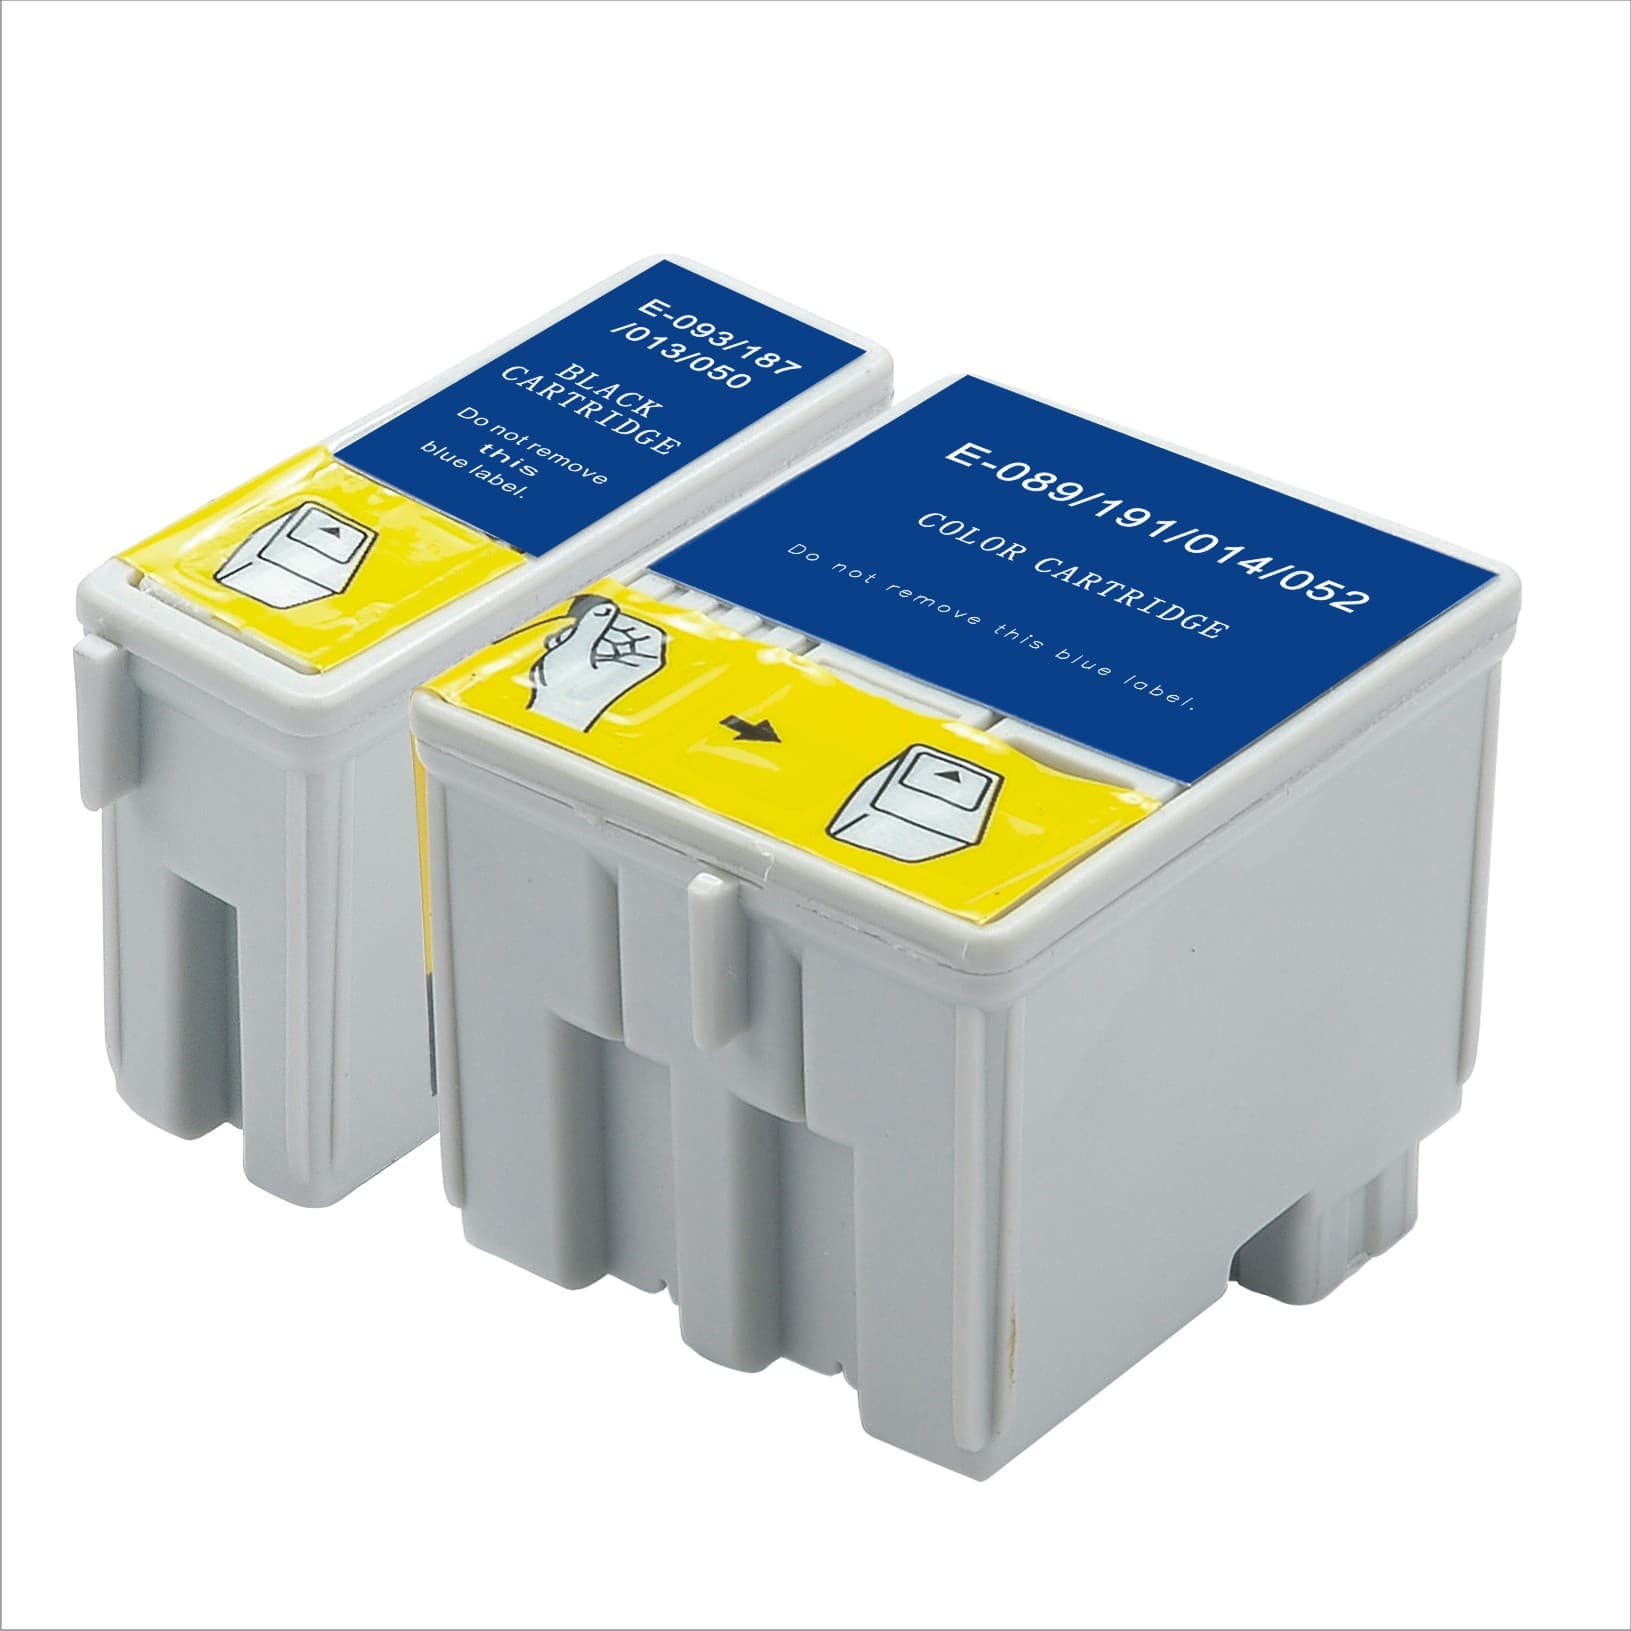 ... Ink cartridge for T013/014/050/052/SO093/187/089/191 Universal ink